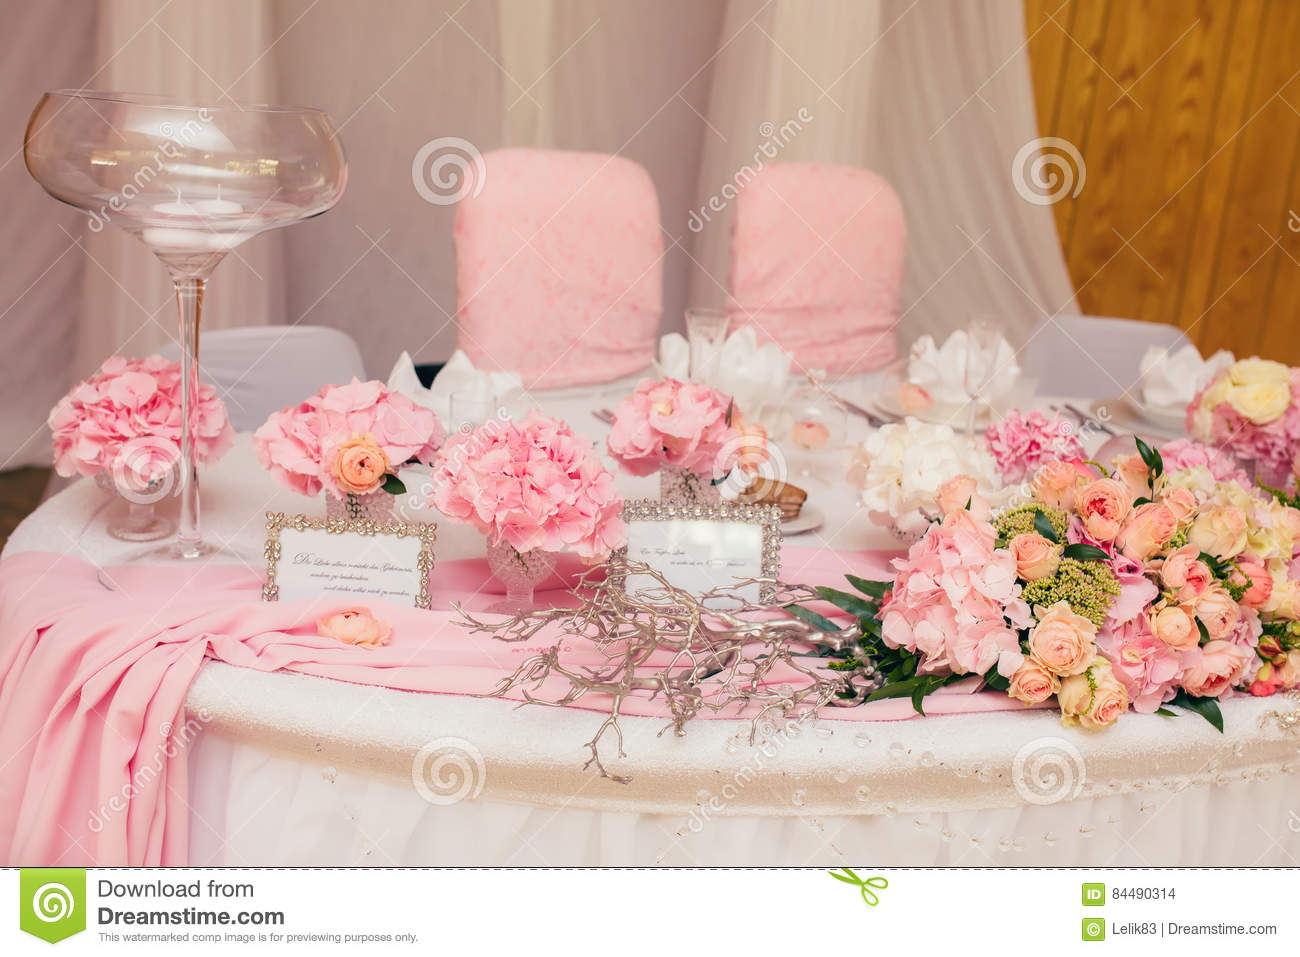 Decoration Wedding Flowers Rings Stock Photo - Image of decor, table ...